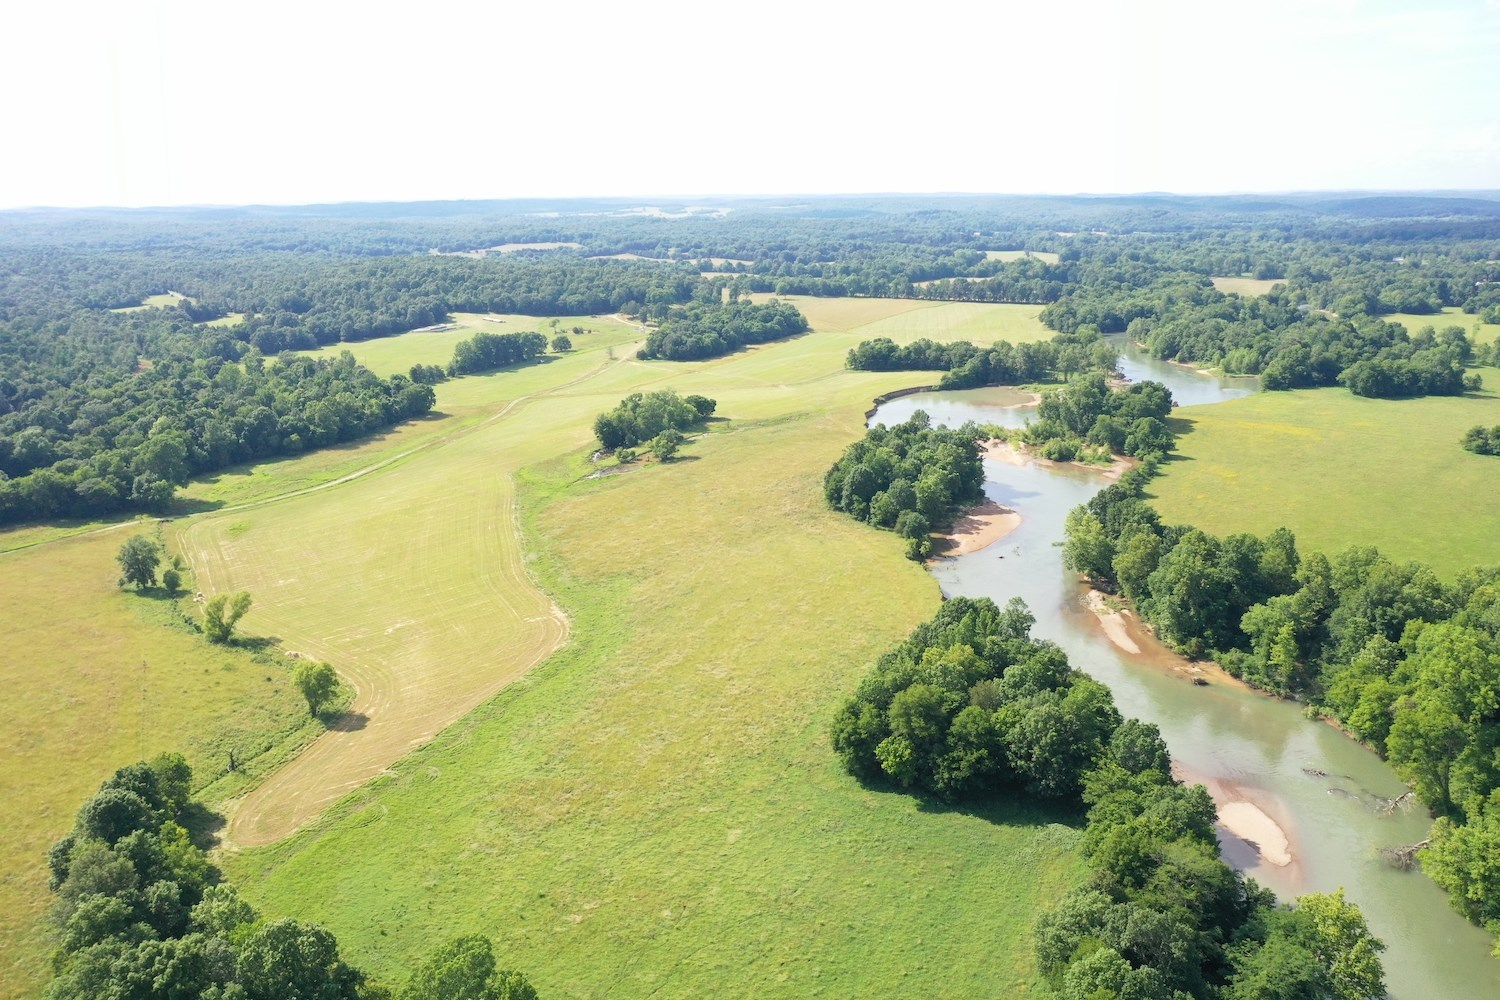 River Farm for Sale in the Ozarks